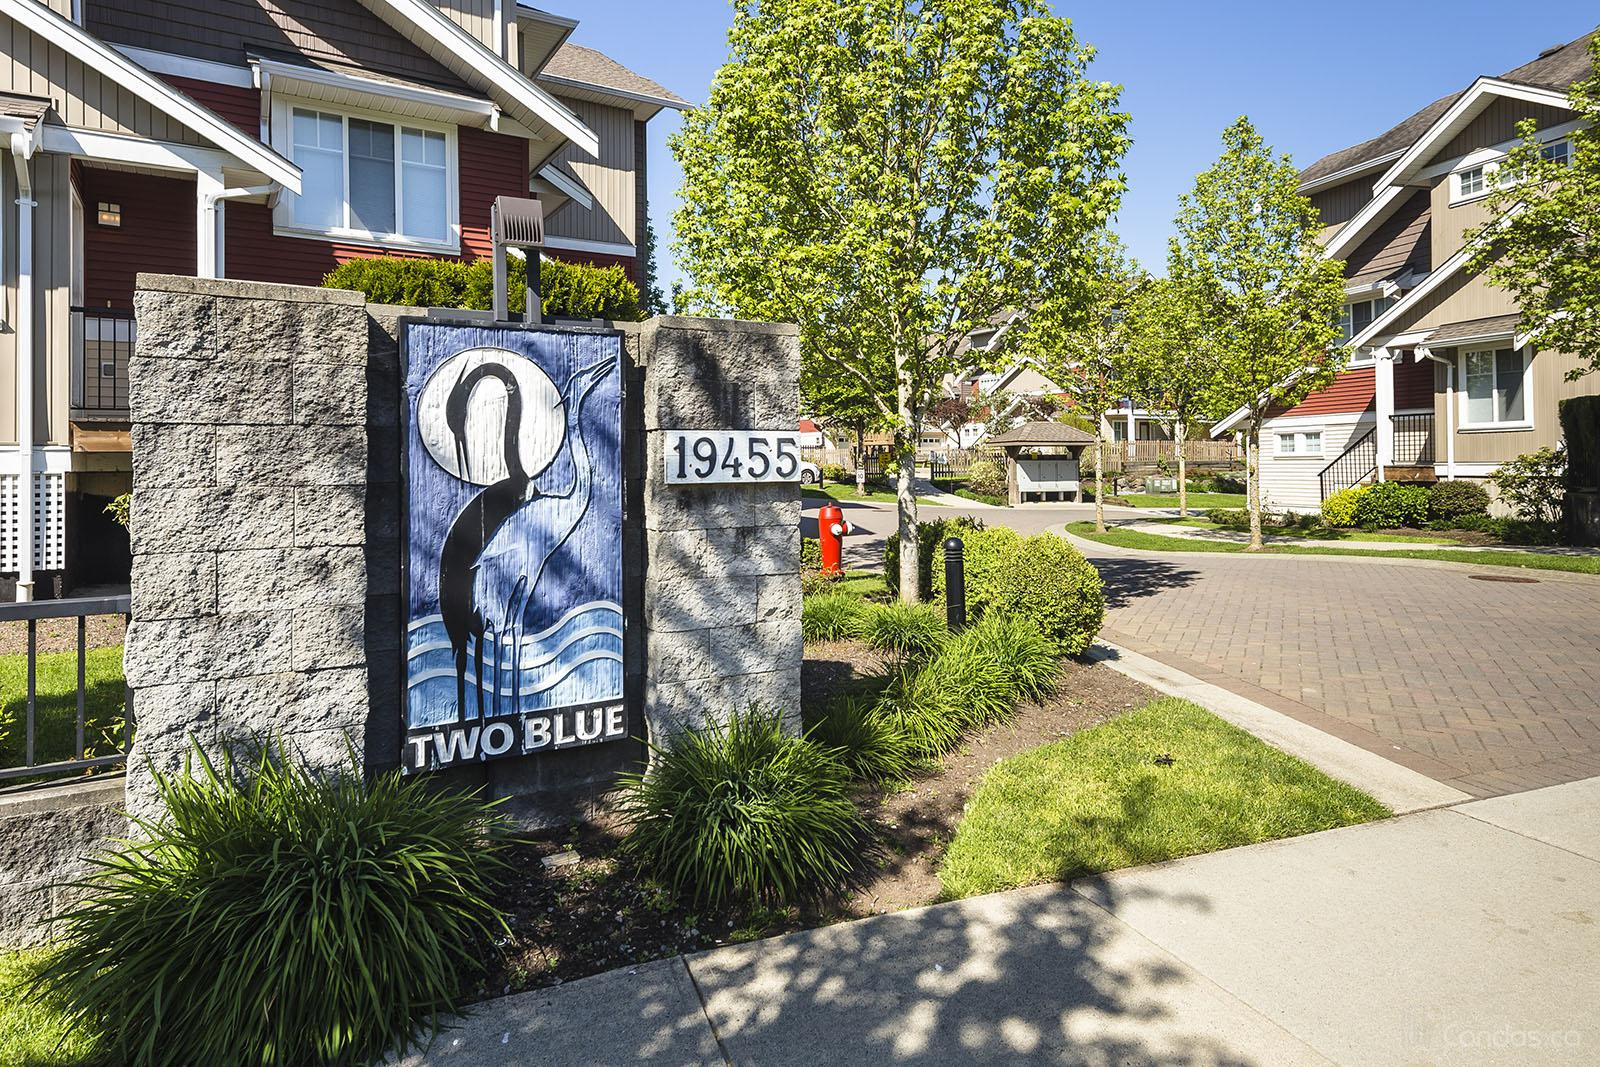 Two Blue at 19455 65 Ave, Surrey 0